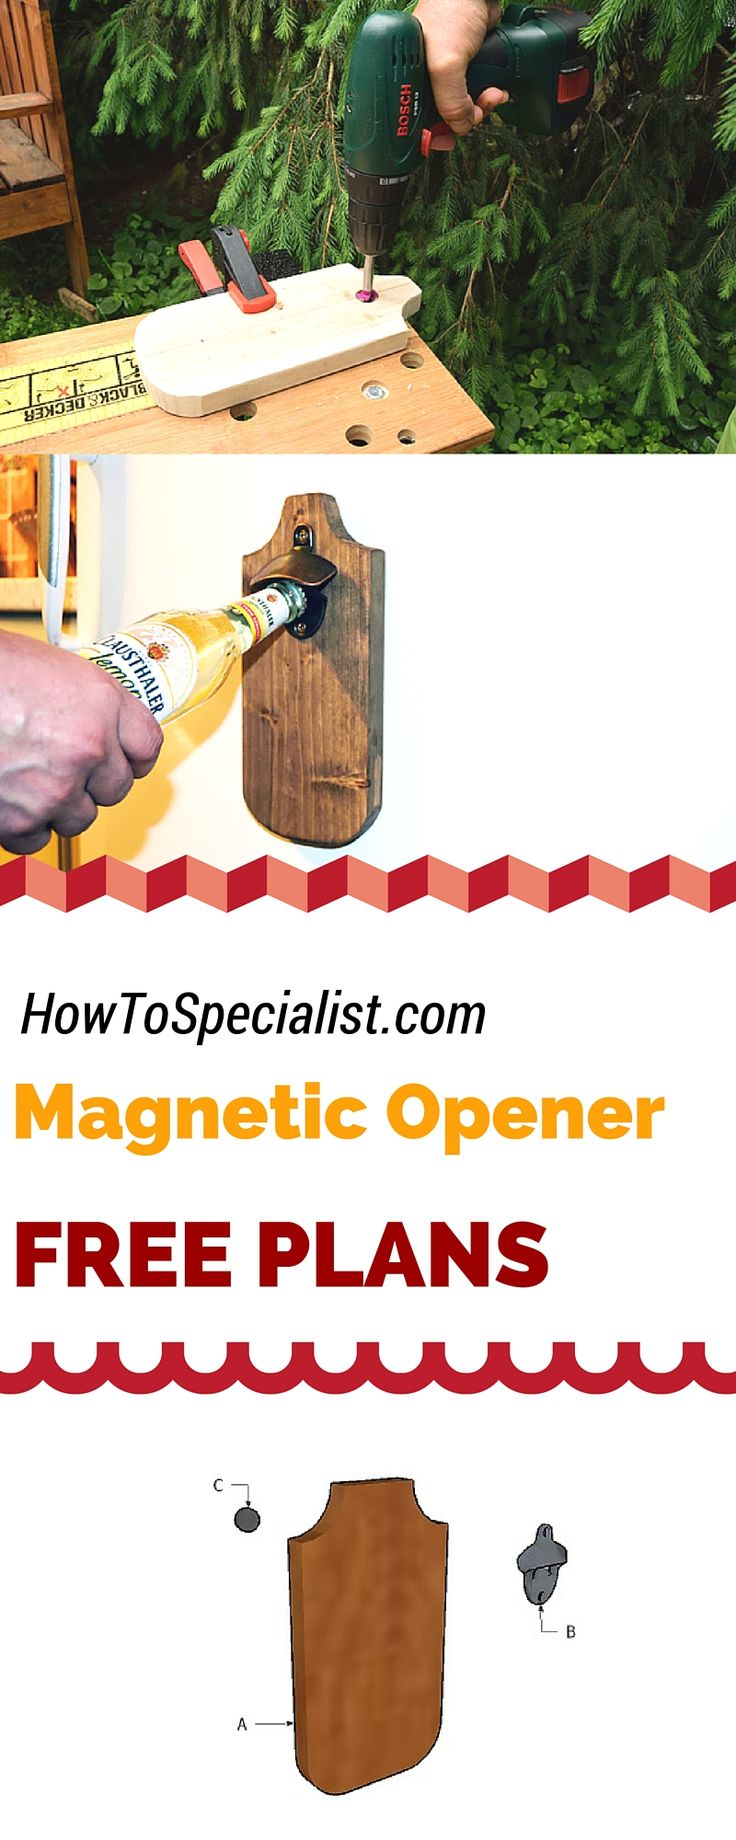 Learn how to build a magnetic bottle opener using a scrap piece of wood and magnets! Free diy bottle opener with magnetic cap catcher! howtospecialist.com #diy #bottleopener #woodworking